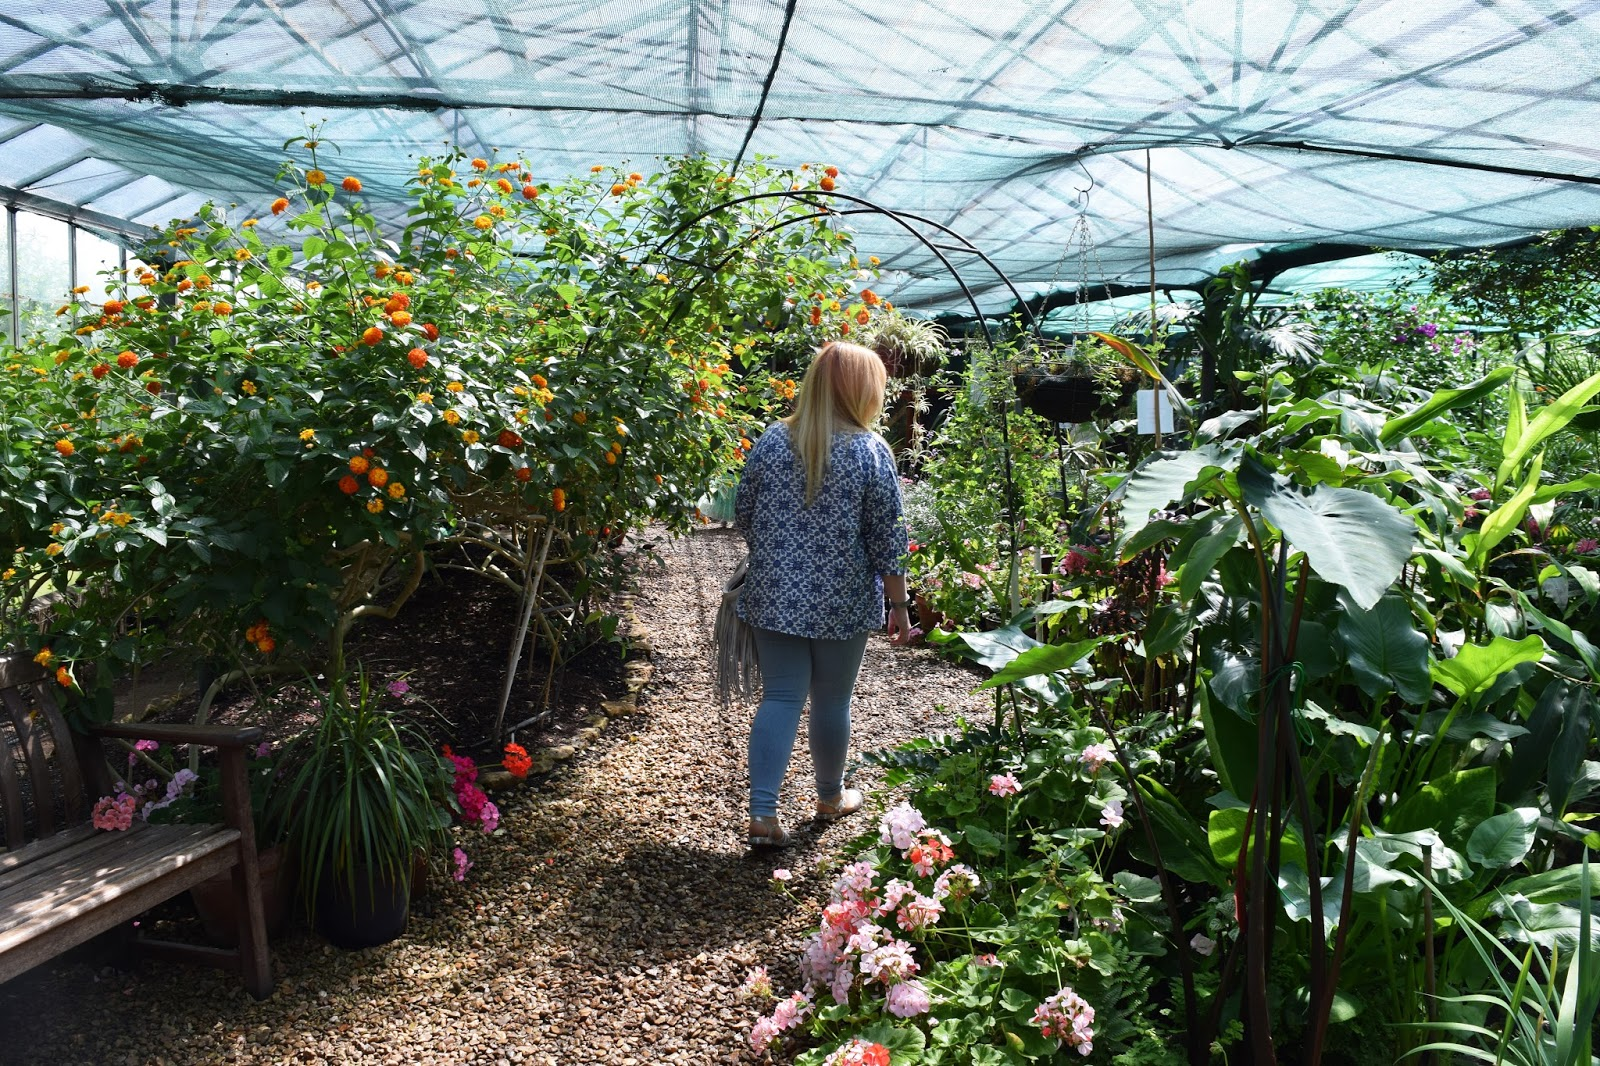 myself walking through an arch inside the butterfly farm. I an surrounded by plants and flowers